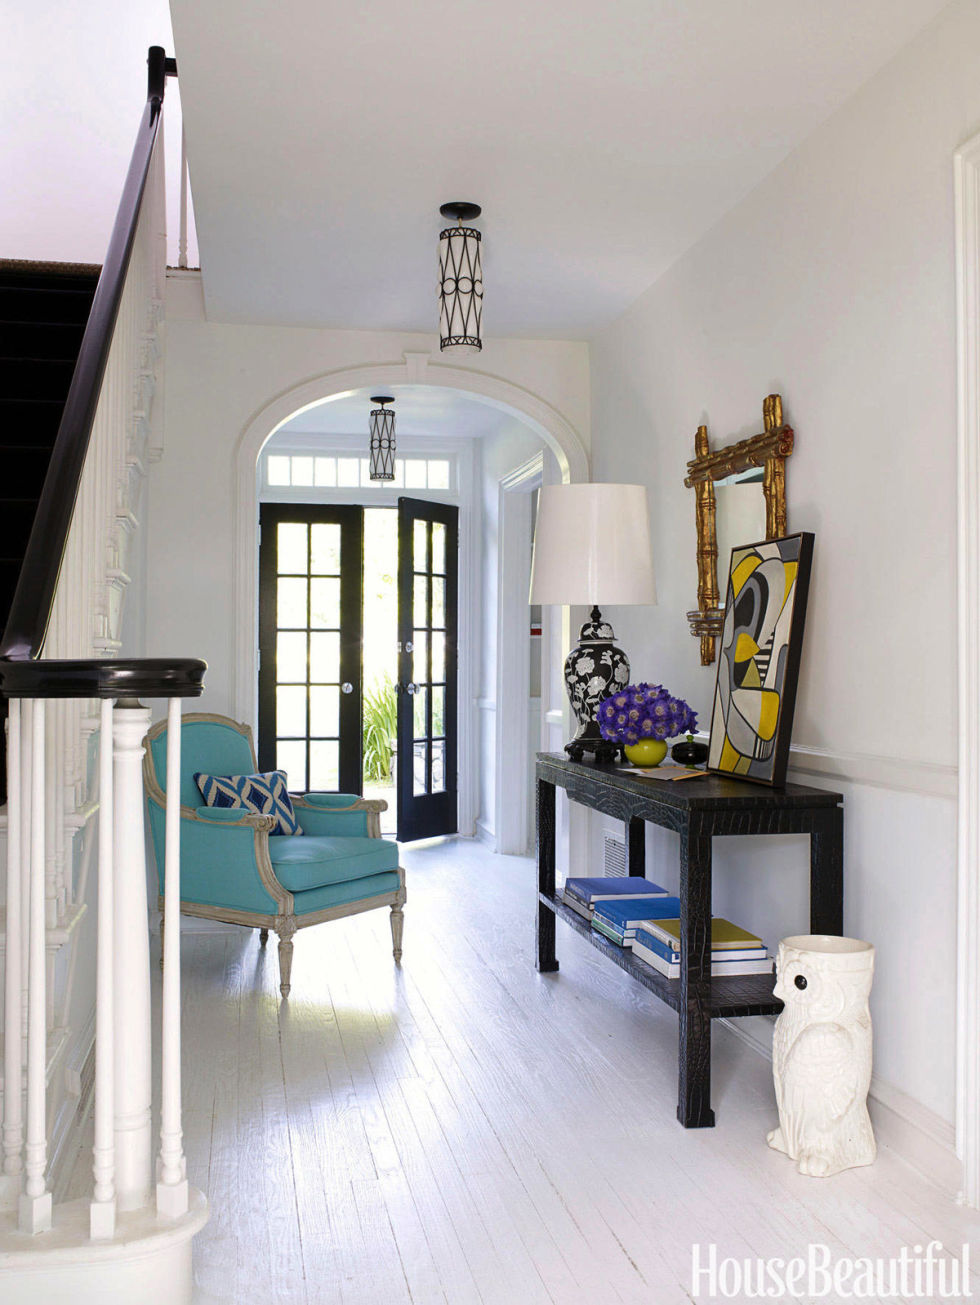 70+ Foyer Decorating Ideas - Design Pictures of Foyers - House Beautiful